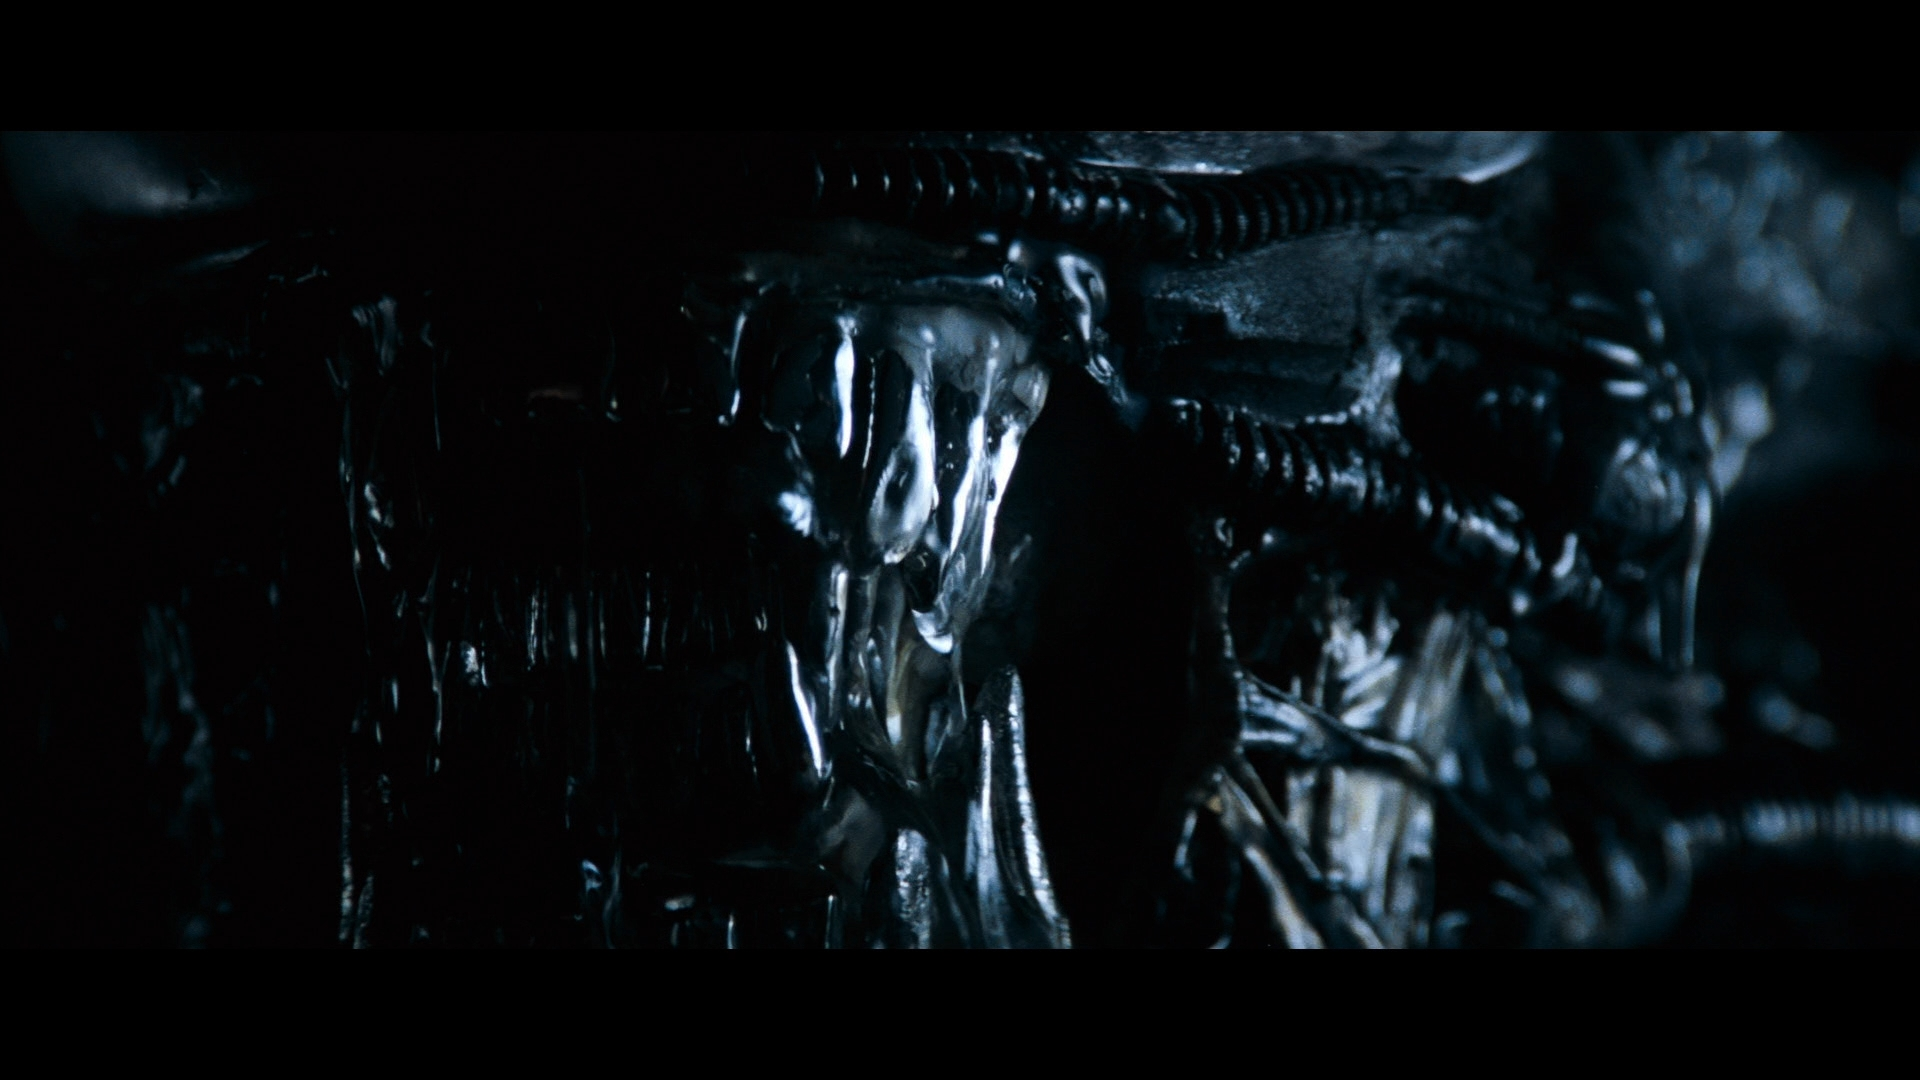 ALIEN (1979) - H.R. Giger-designed Special Effects Mechanical Alien Head - Image 34 of 34